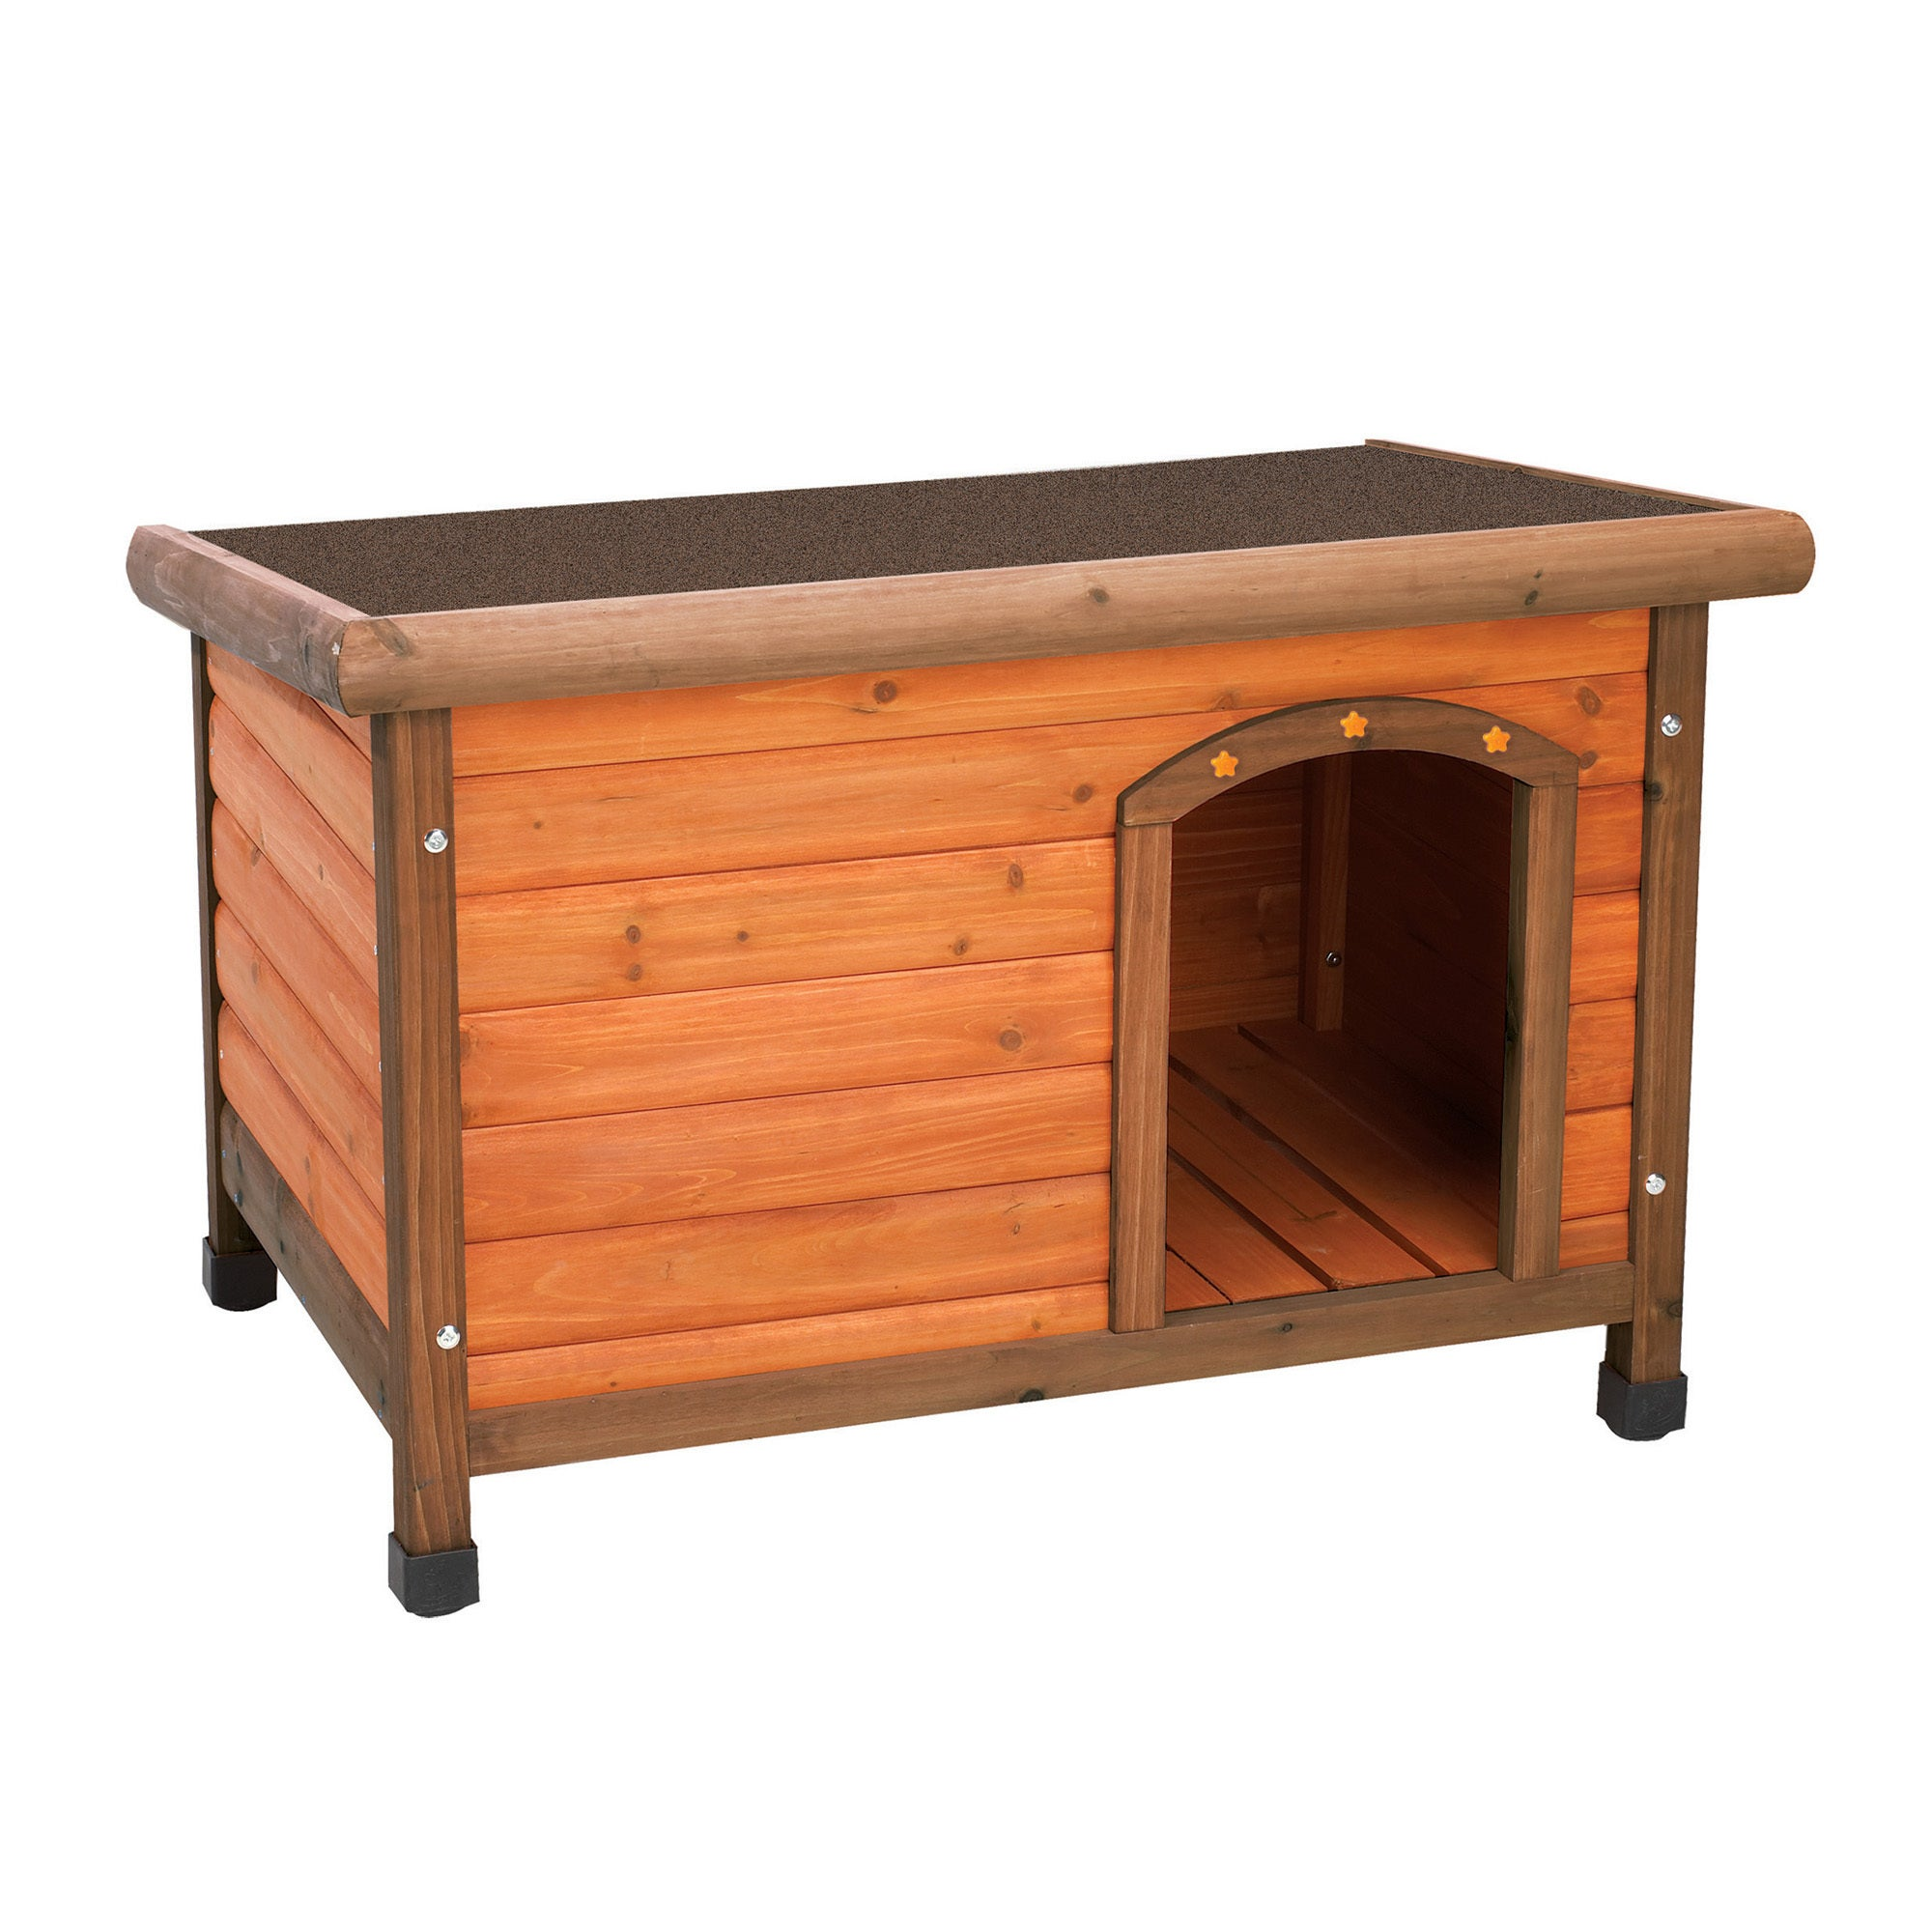 Ware Premium+ Dog house, Small (Small), Brown